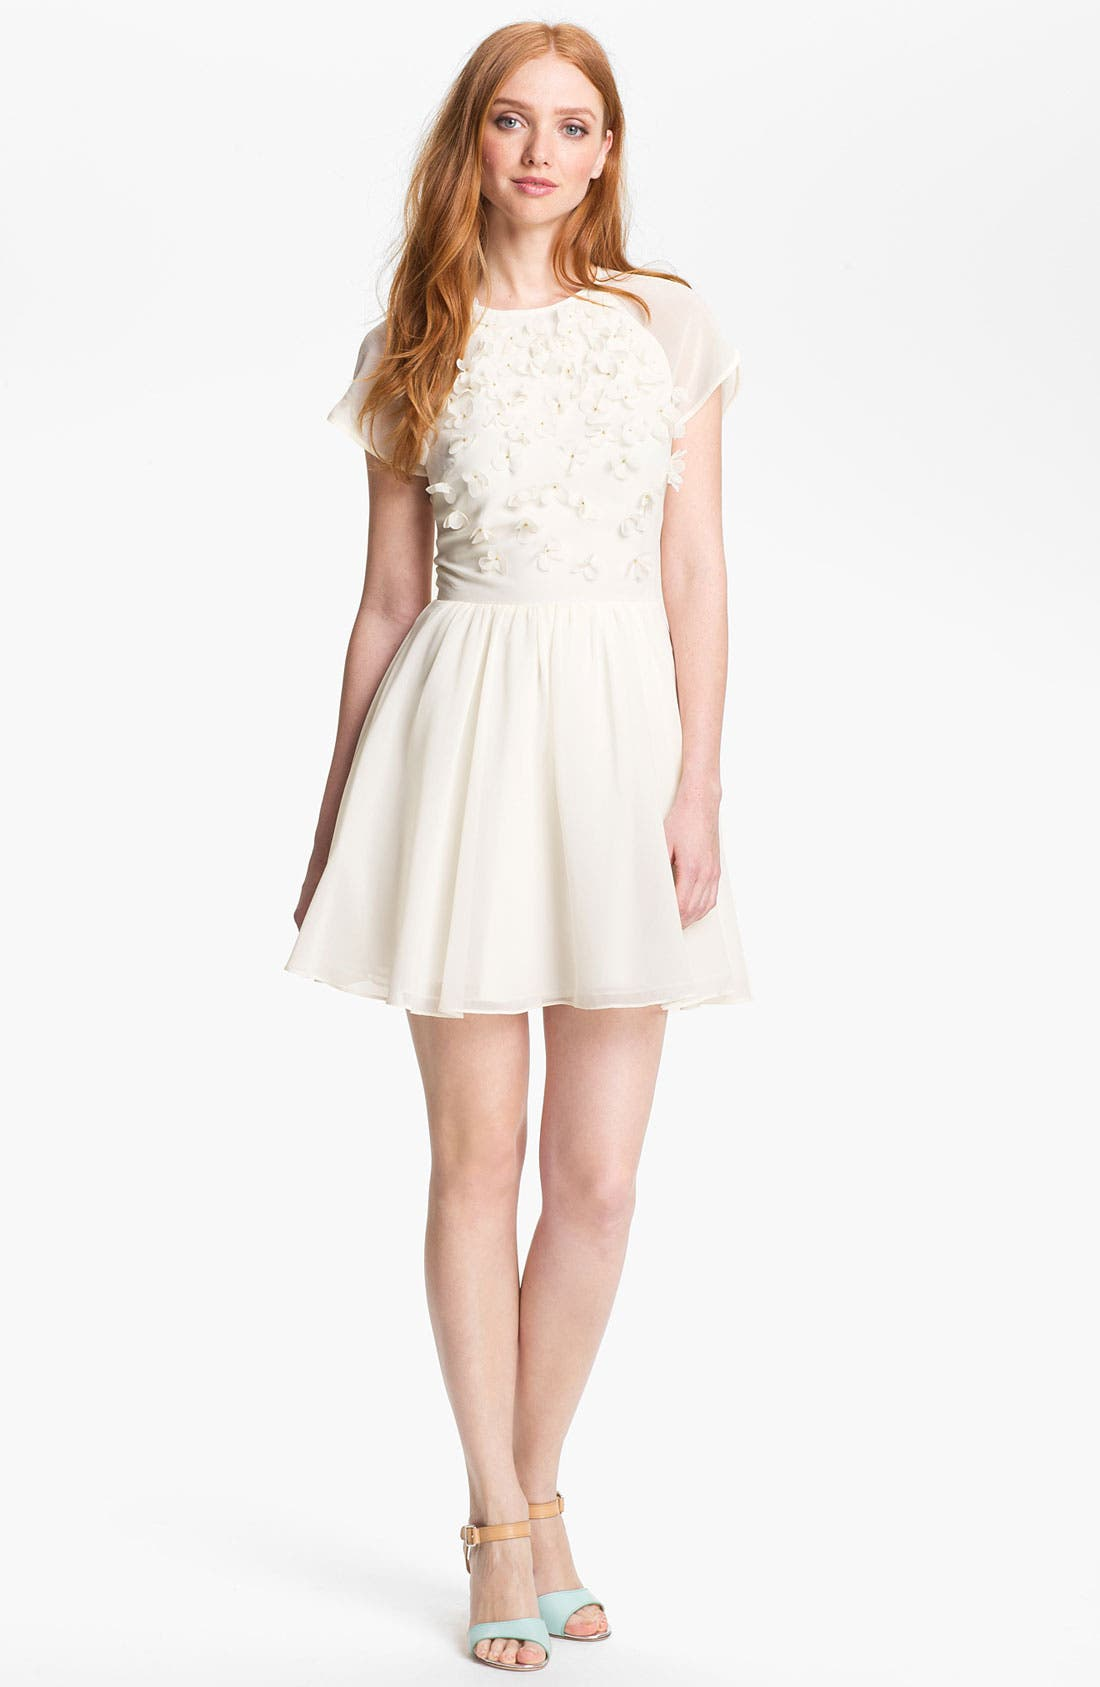 Alternate Image 1 Selected - Ted Baker London Organza Fit & Flare Dress (Online Only)